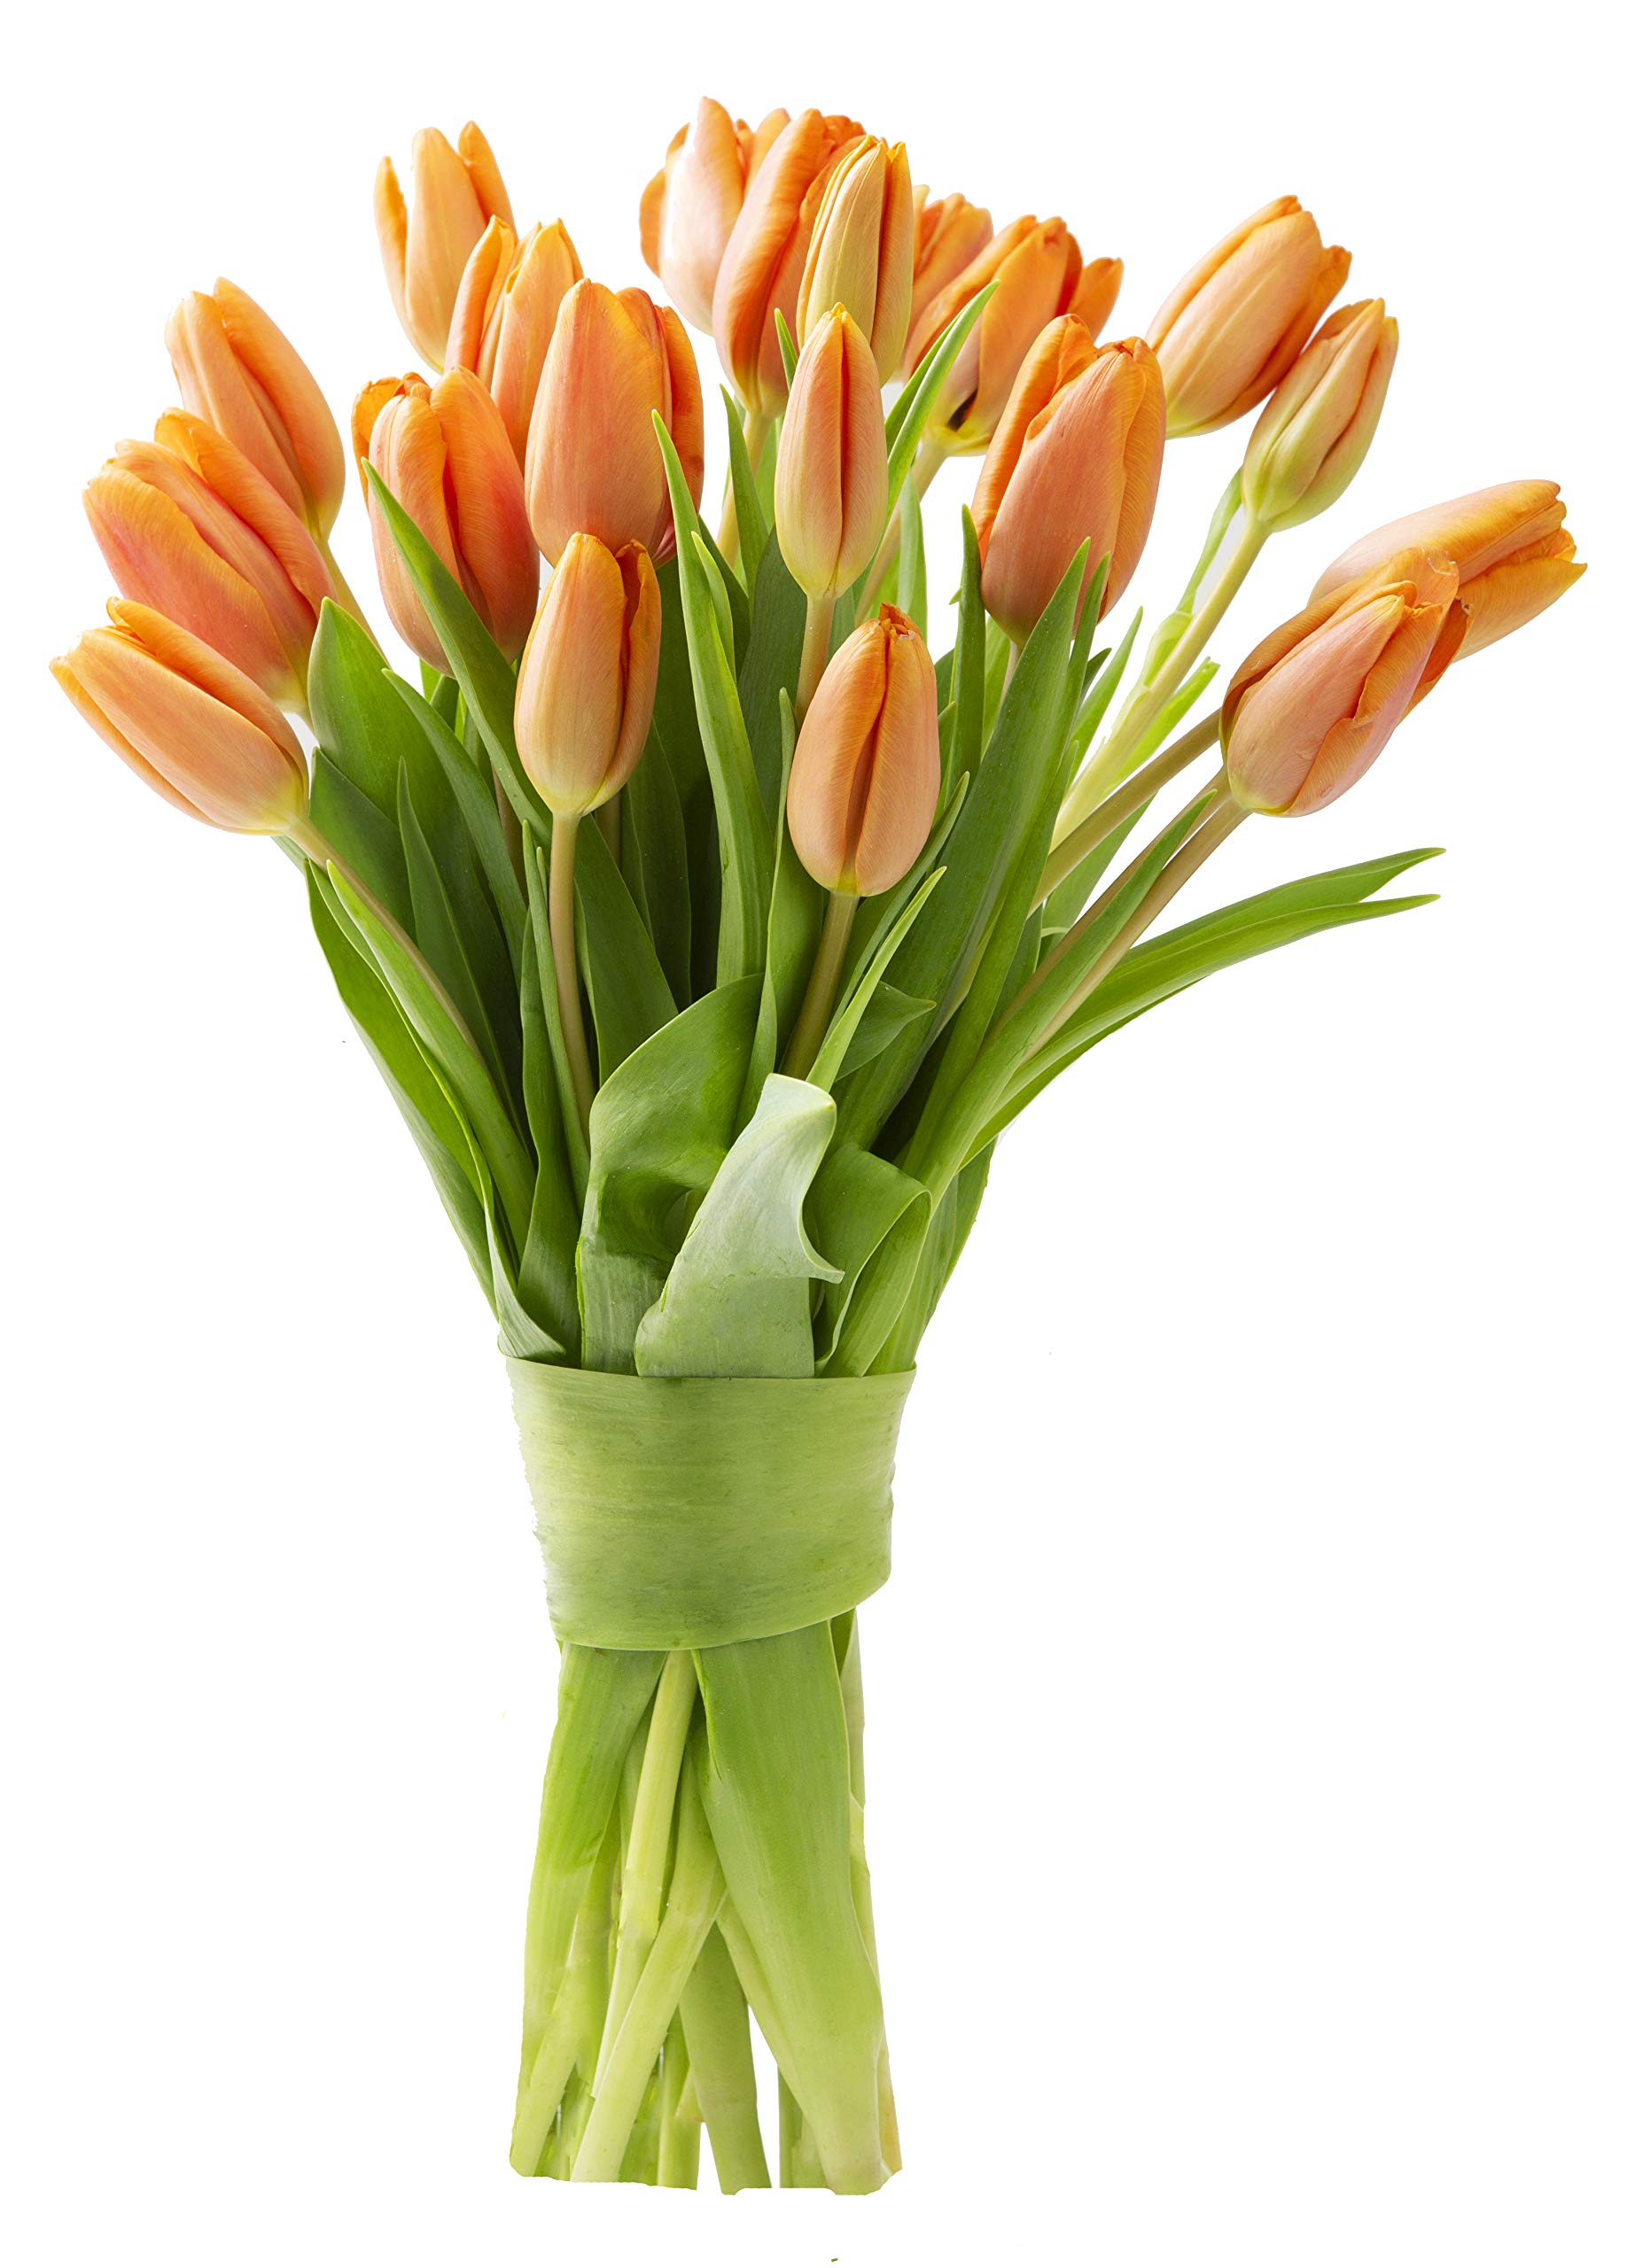 Blooms2Door 20 Orange Tulips (Farm-Fresh Flowers, Cut-to-Order, and Homegrown in the USA)